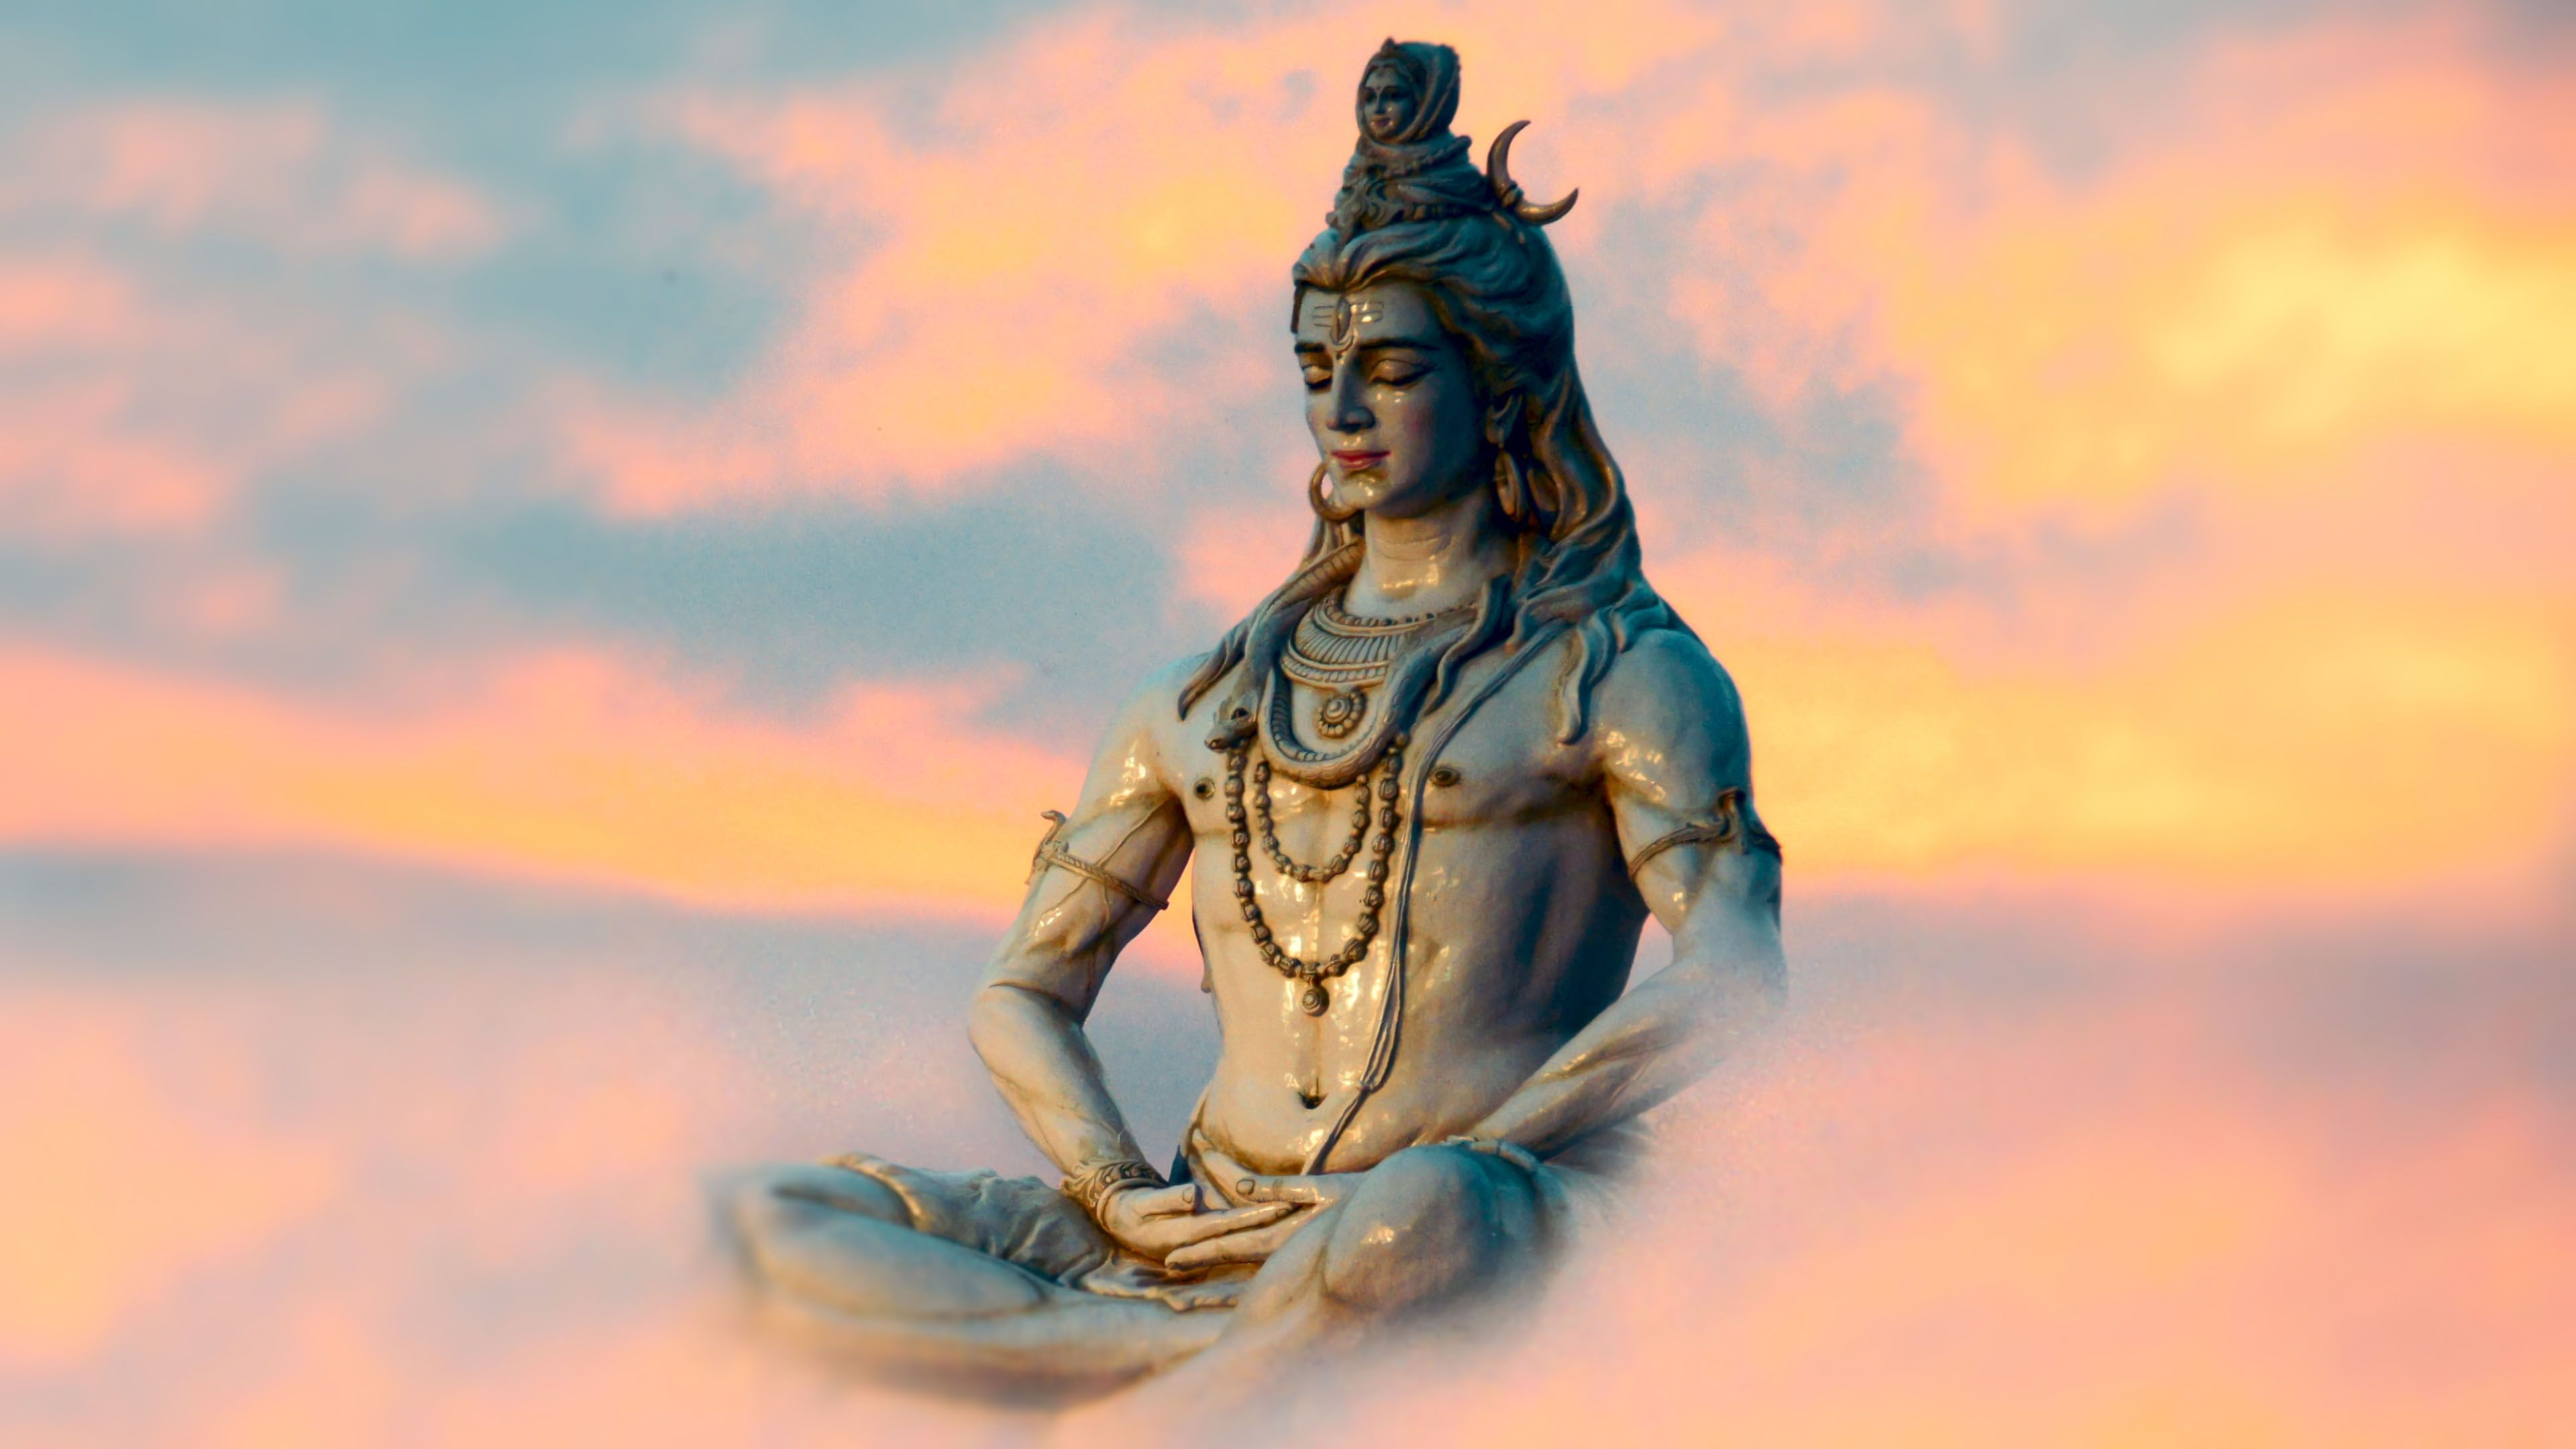 Lord Shiva 4k Wallpapers Top Free Lord Shiva 4k Backgrounds Wallpaperaccess